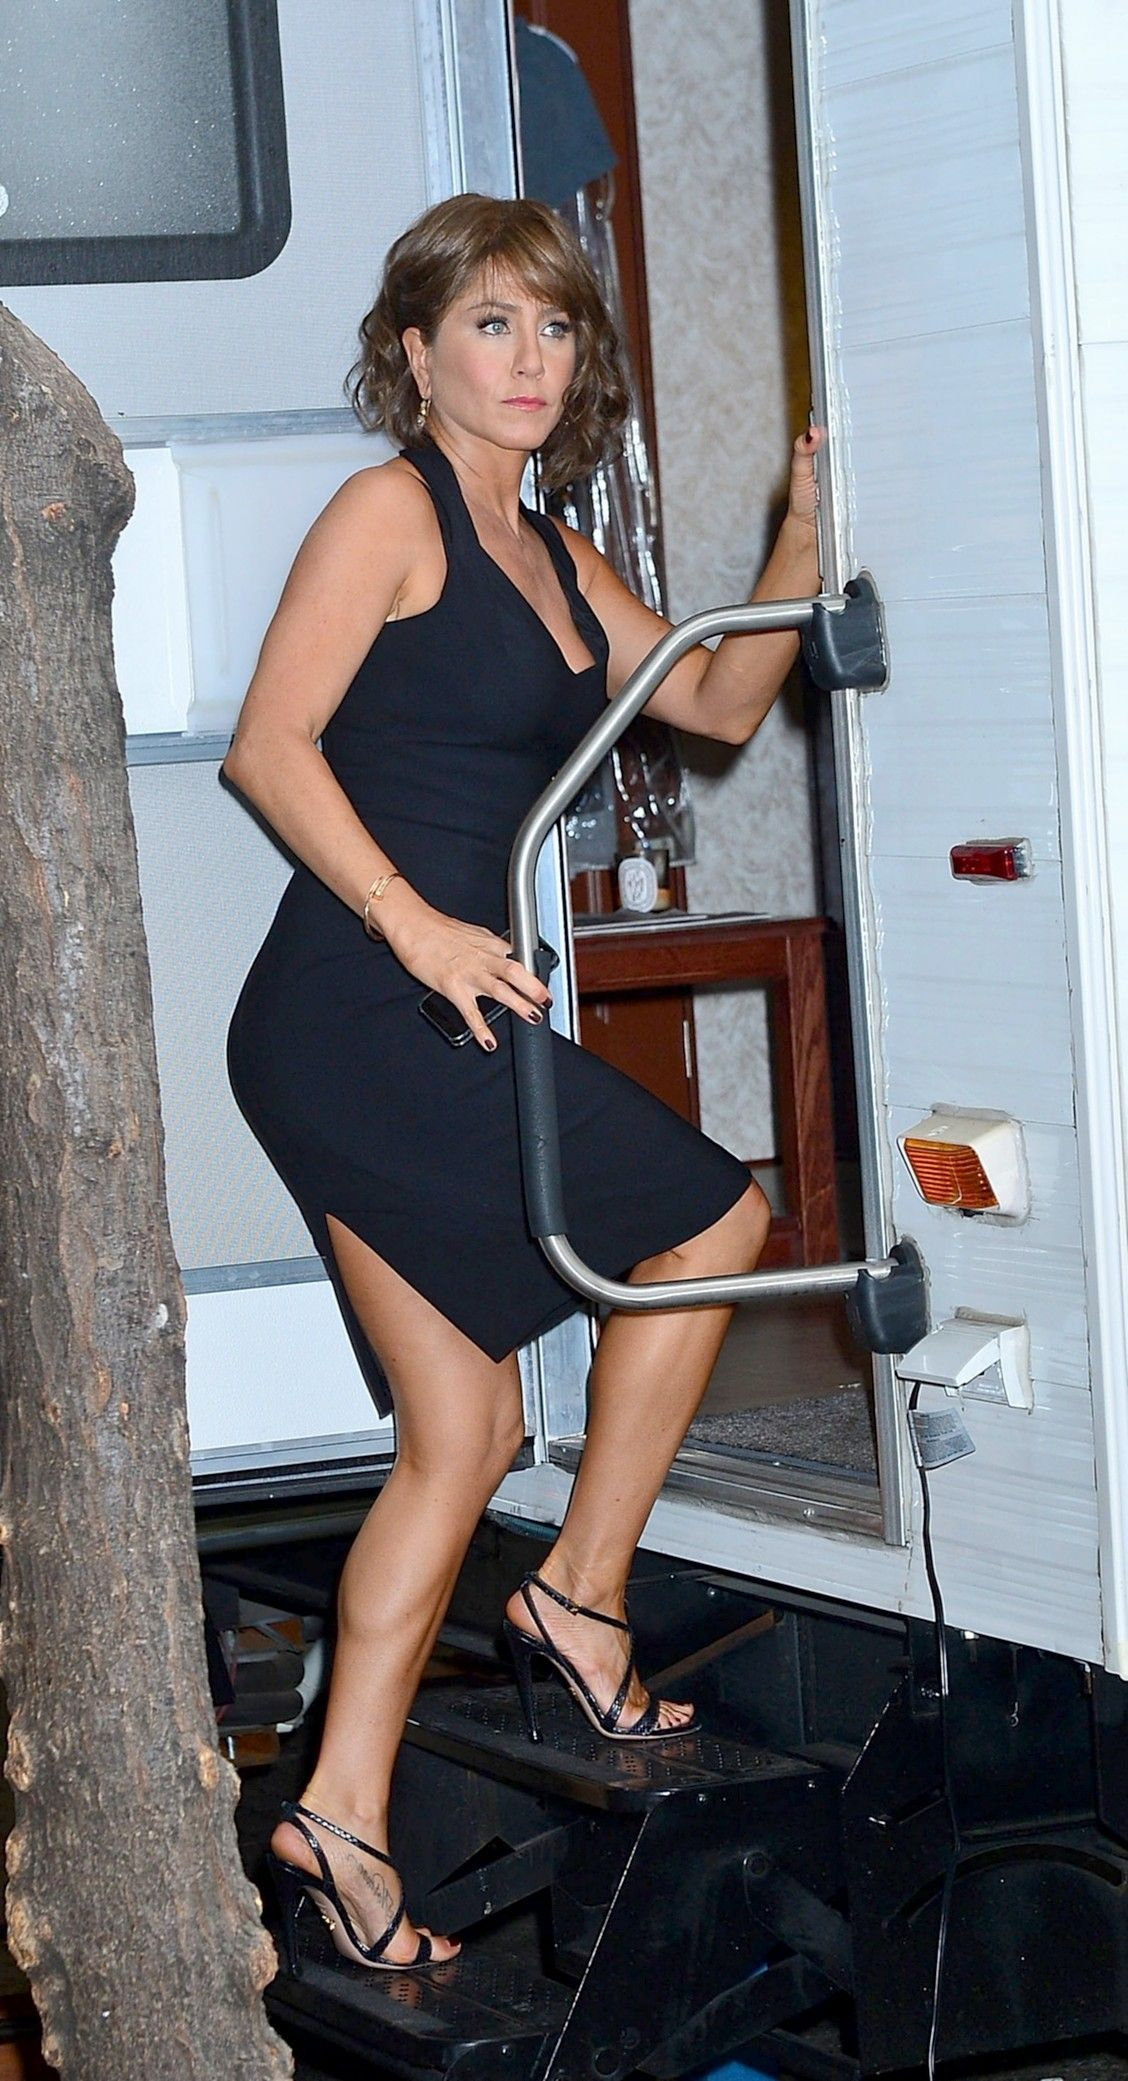 Baby game young jennifer aniston legs